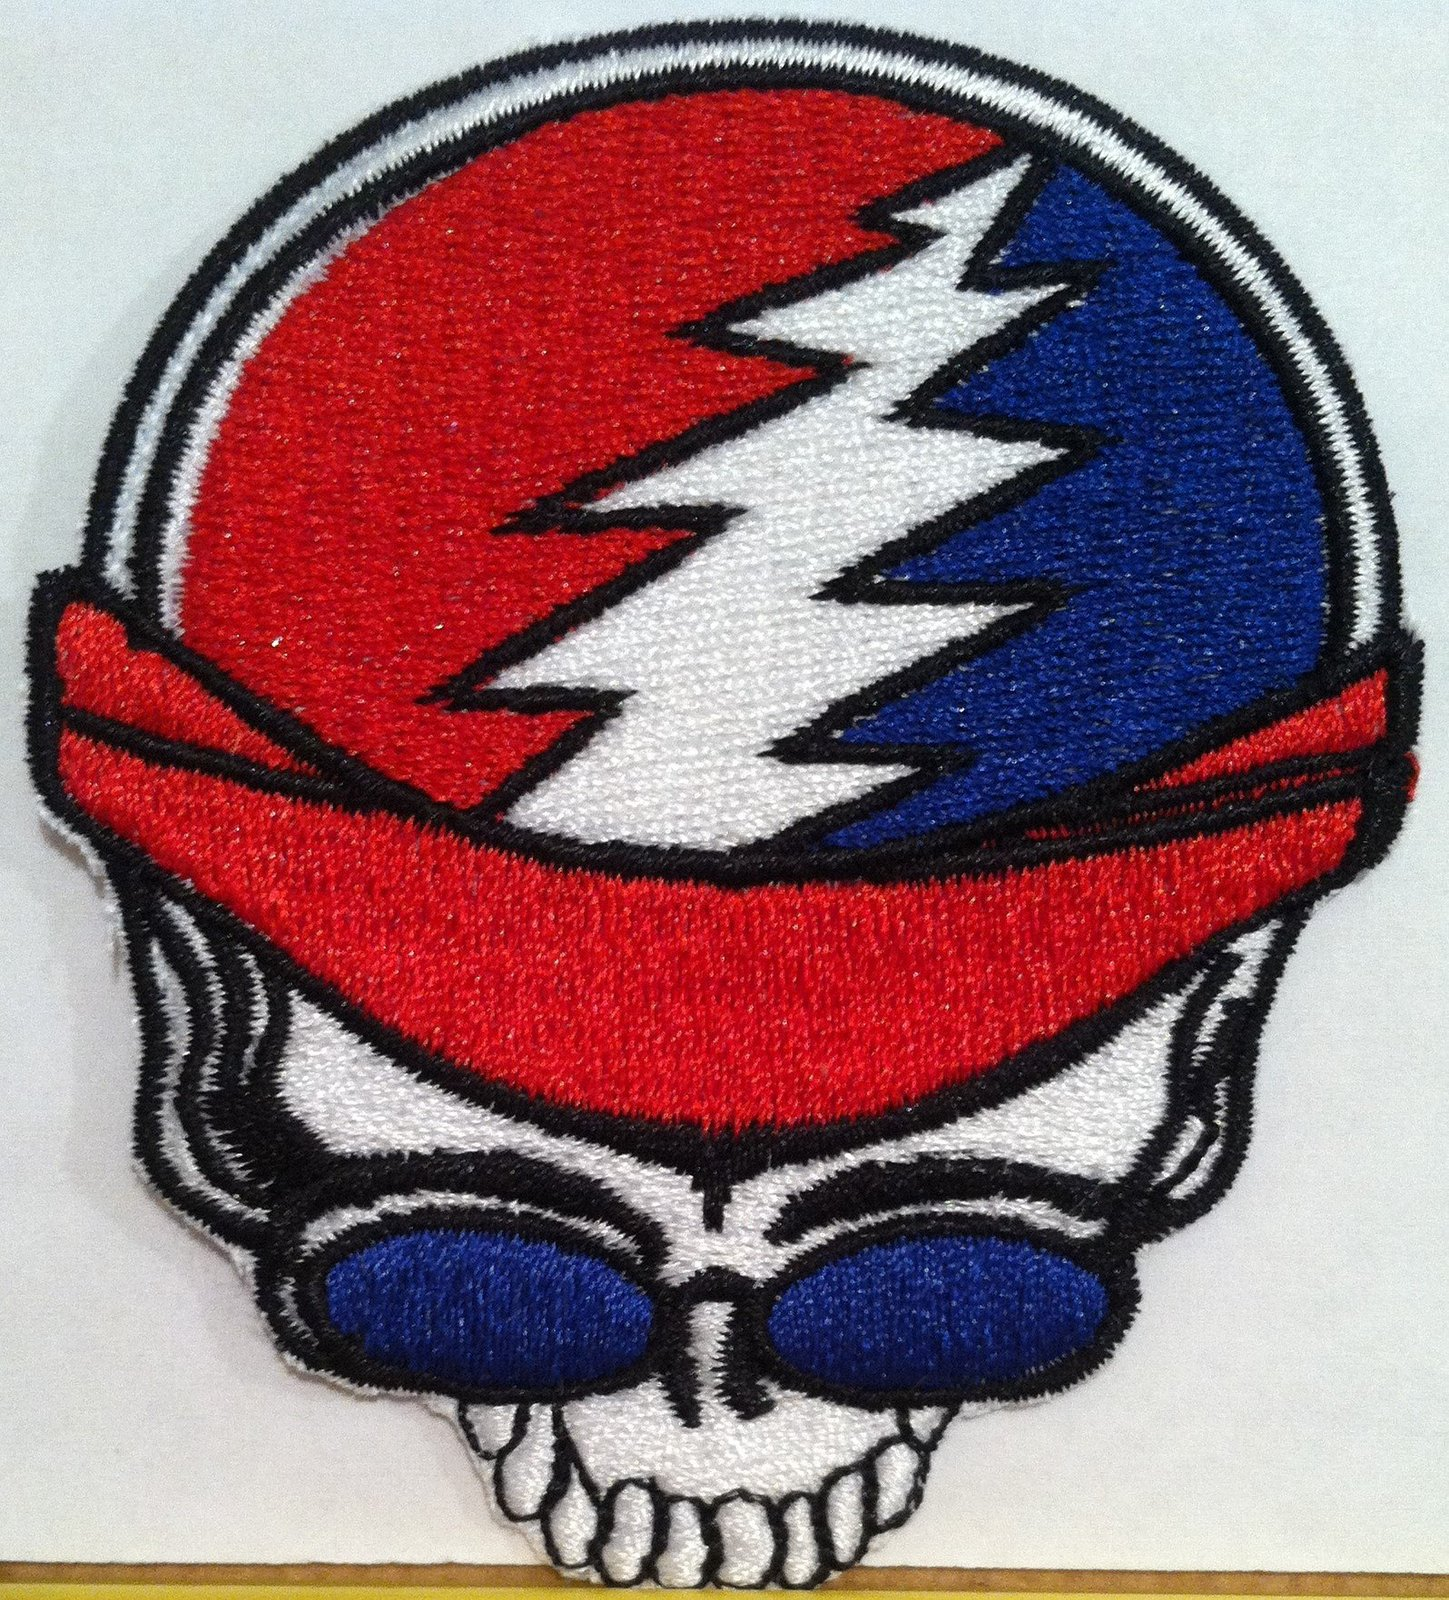 Primary image for Skull Biker Iron On Patch Embroidered USA Biker Emblem